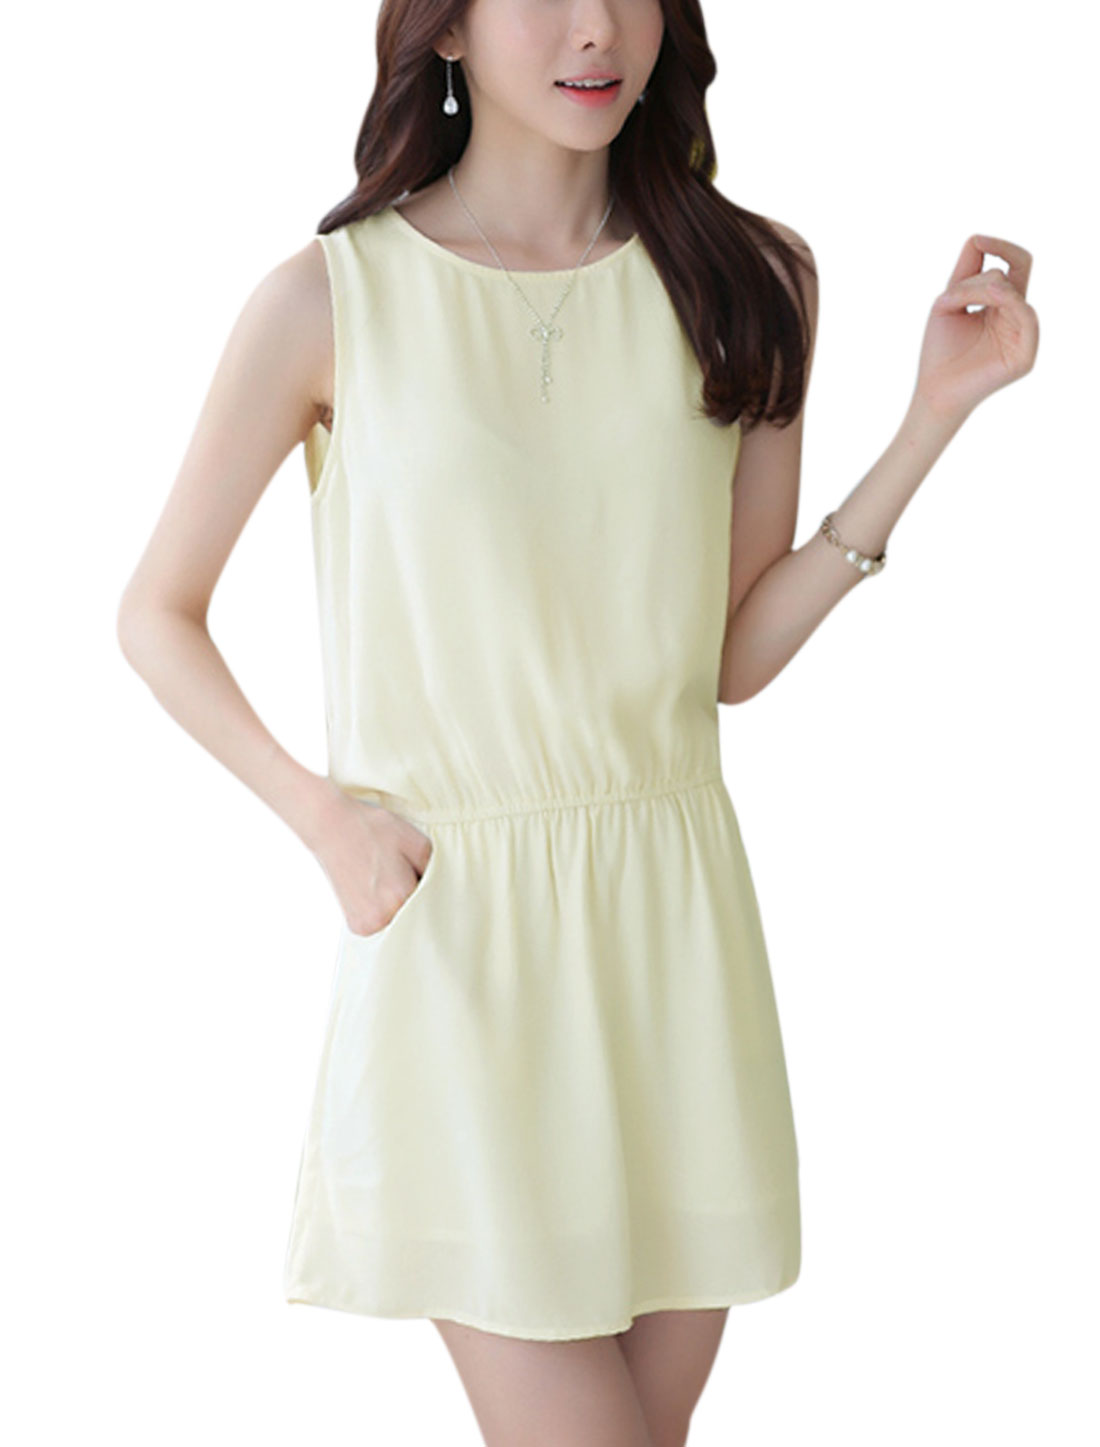 Lady Sleeveless Elastic Waist Unlined Chiffon Dress Light Yellow S